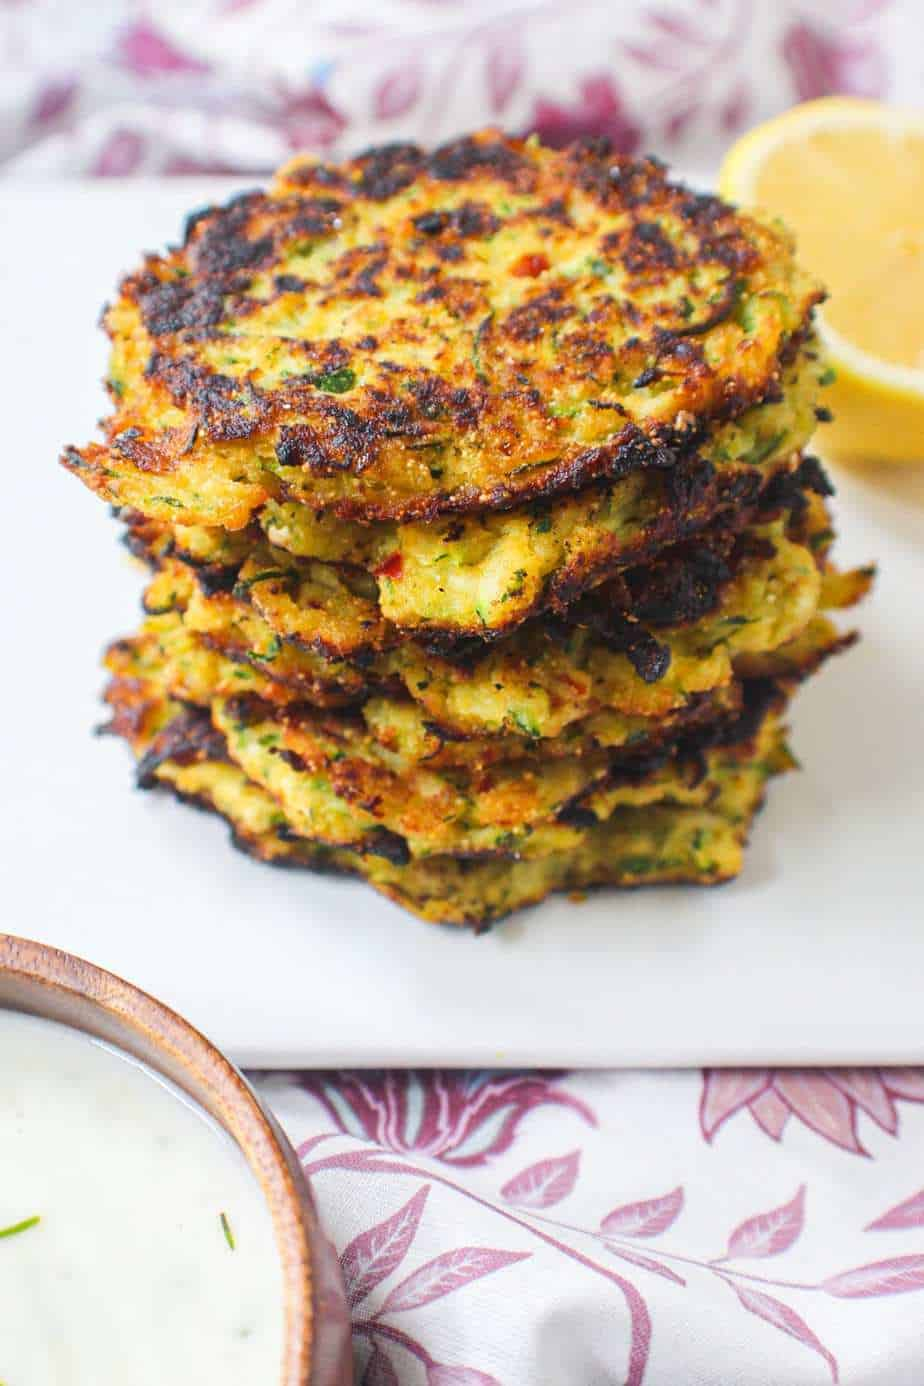 side shot of a stack of cornmeal zucchini fritters on a white plate with a floral napkin underneath.